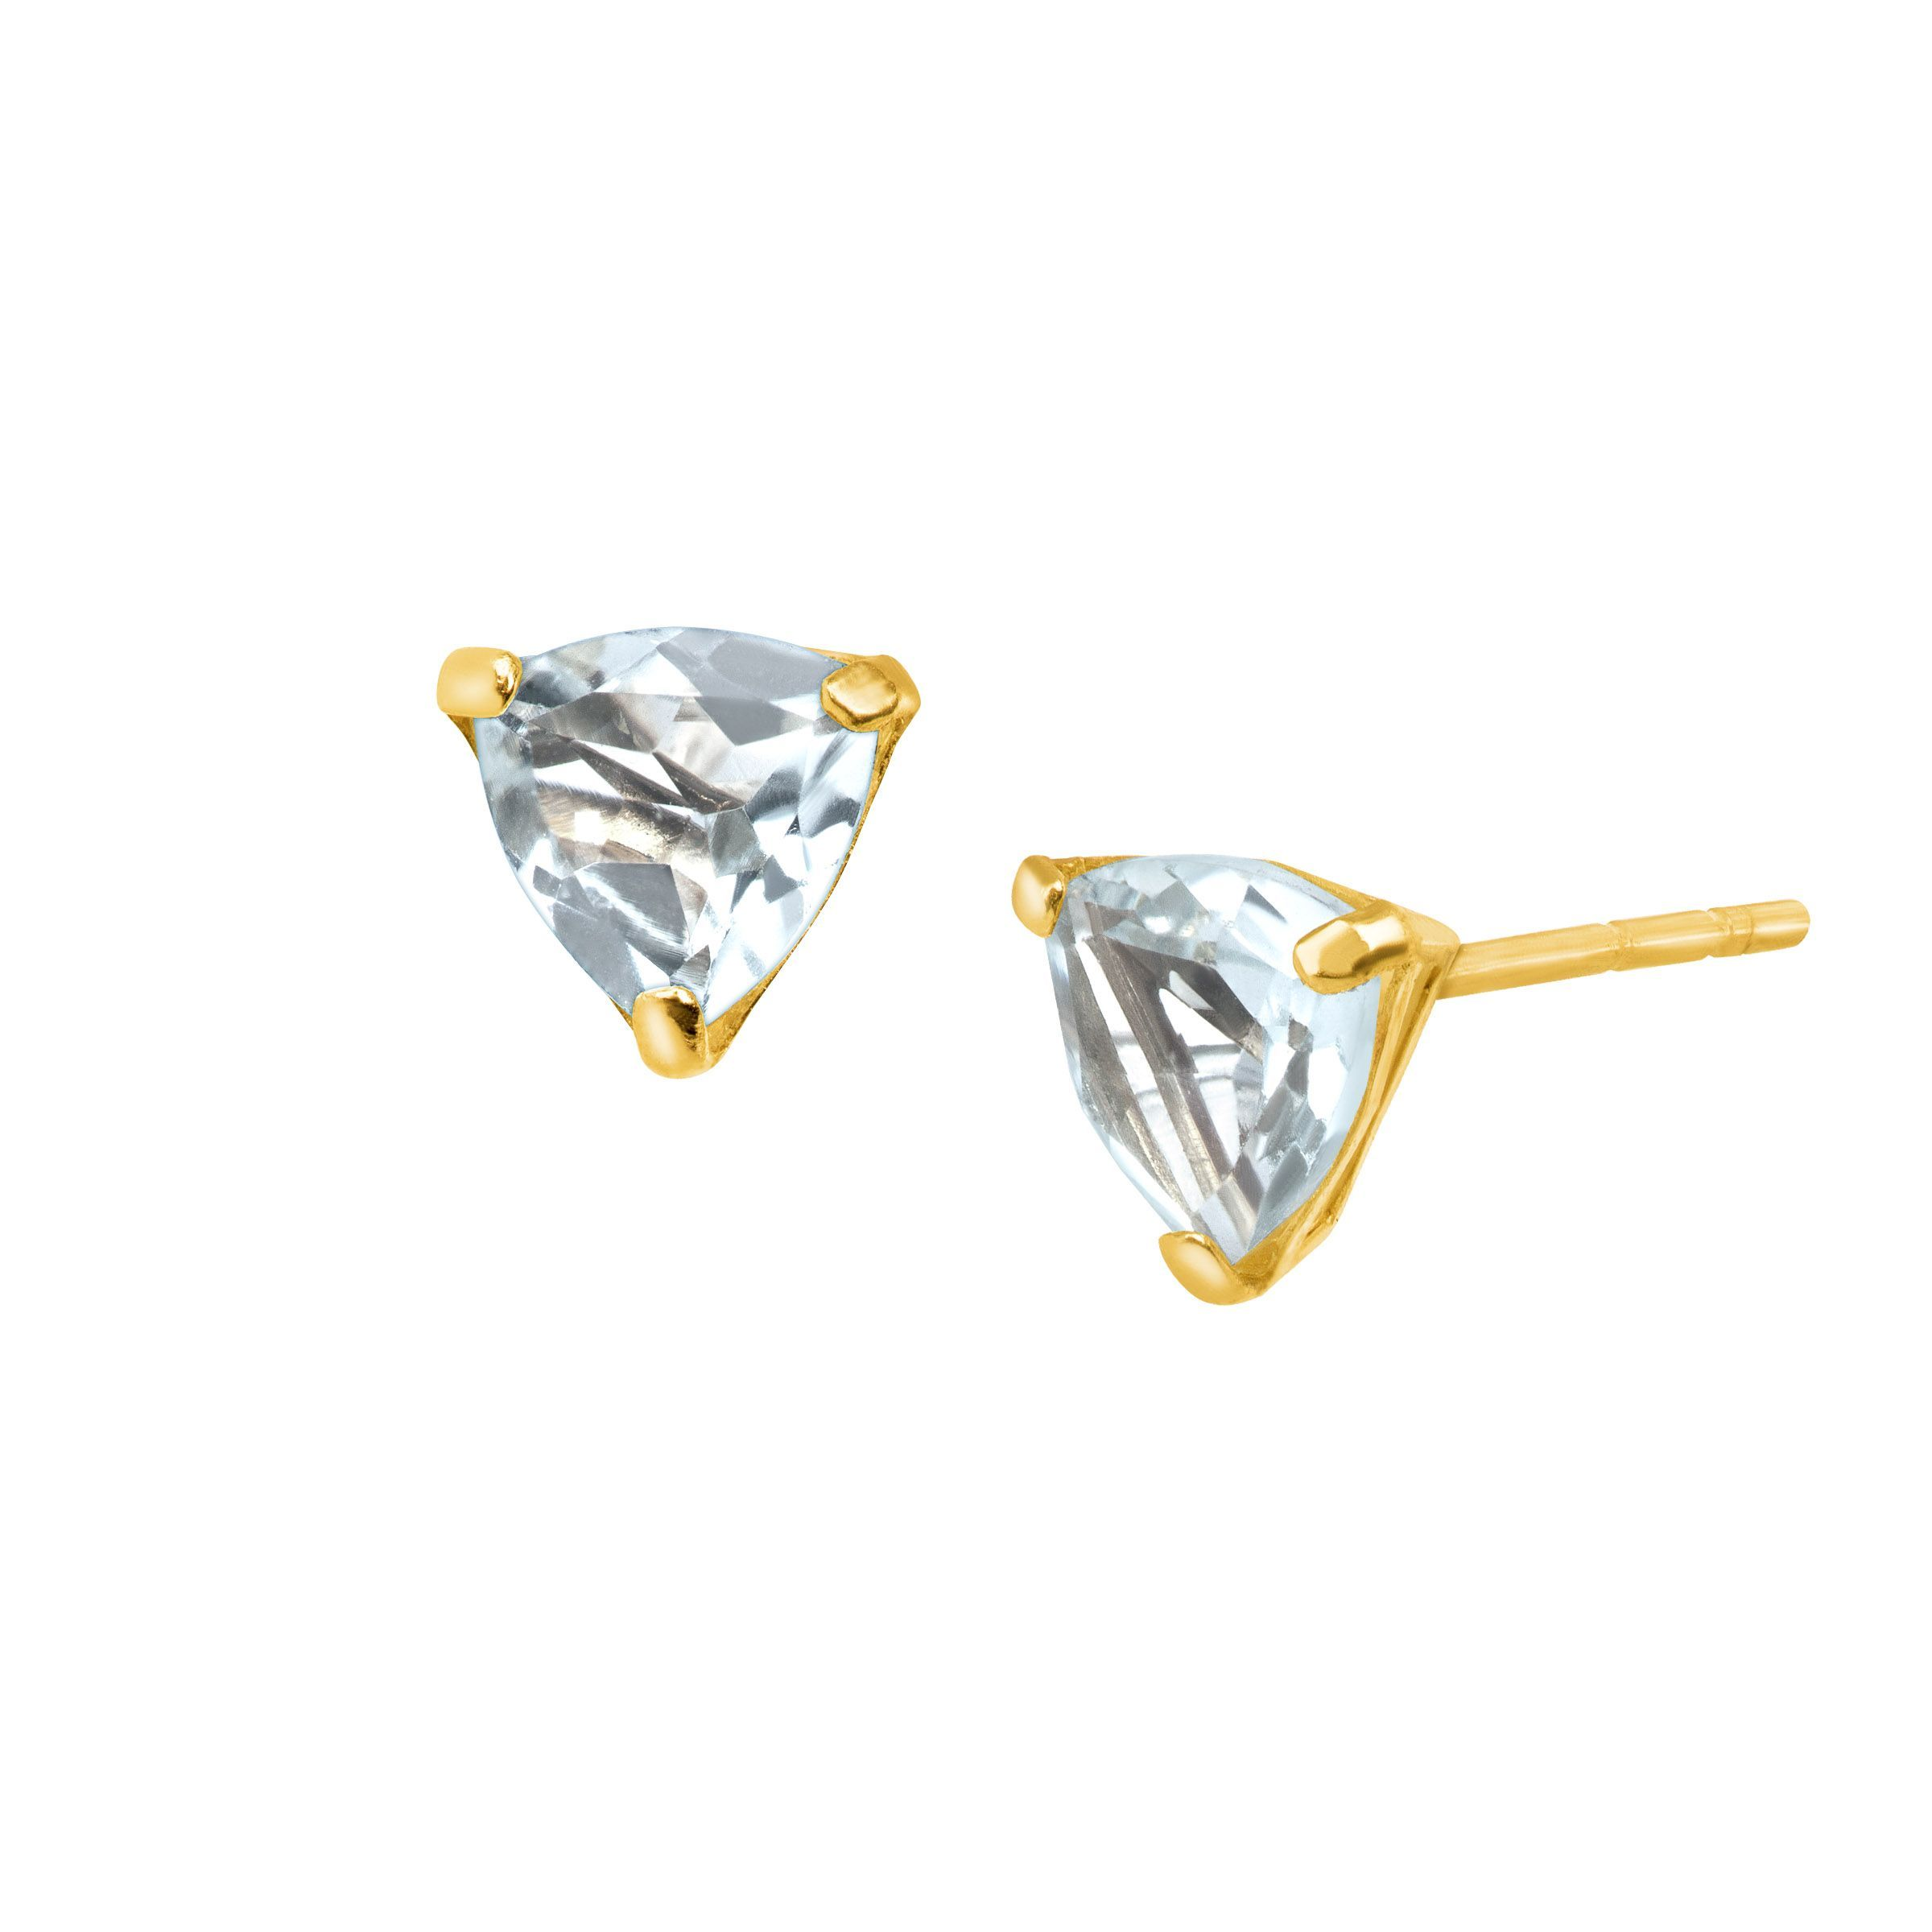 cut engagement white carat about center shaped yellow gold pear details trillion diamond stone specs earrings itm ring